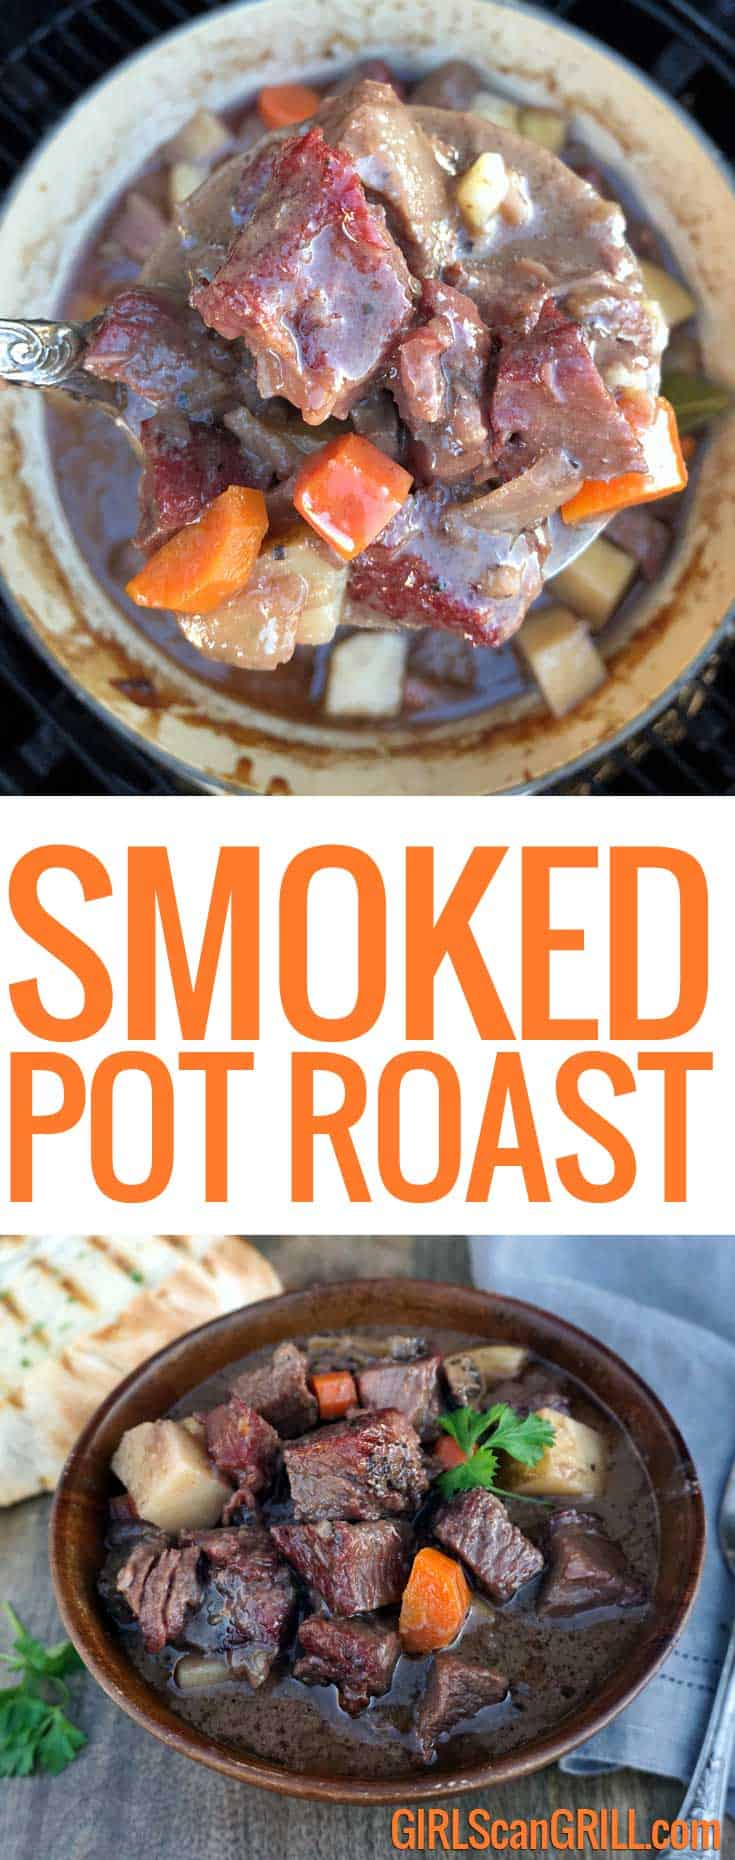 Elevate a family classic – Smoked Pot Roast brings together the traditional flavors of pot roast with a hickory smoked chuck roast braised over the fire.